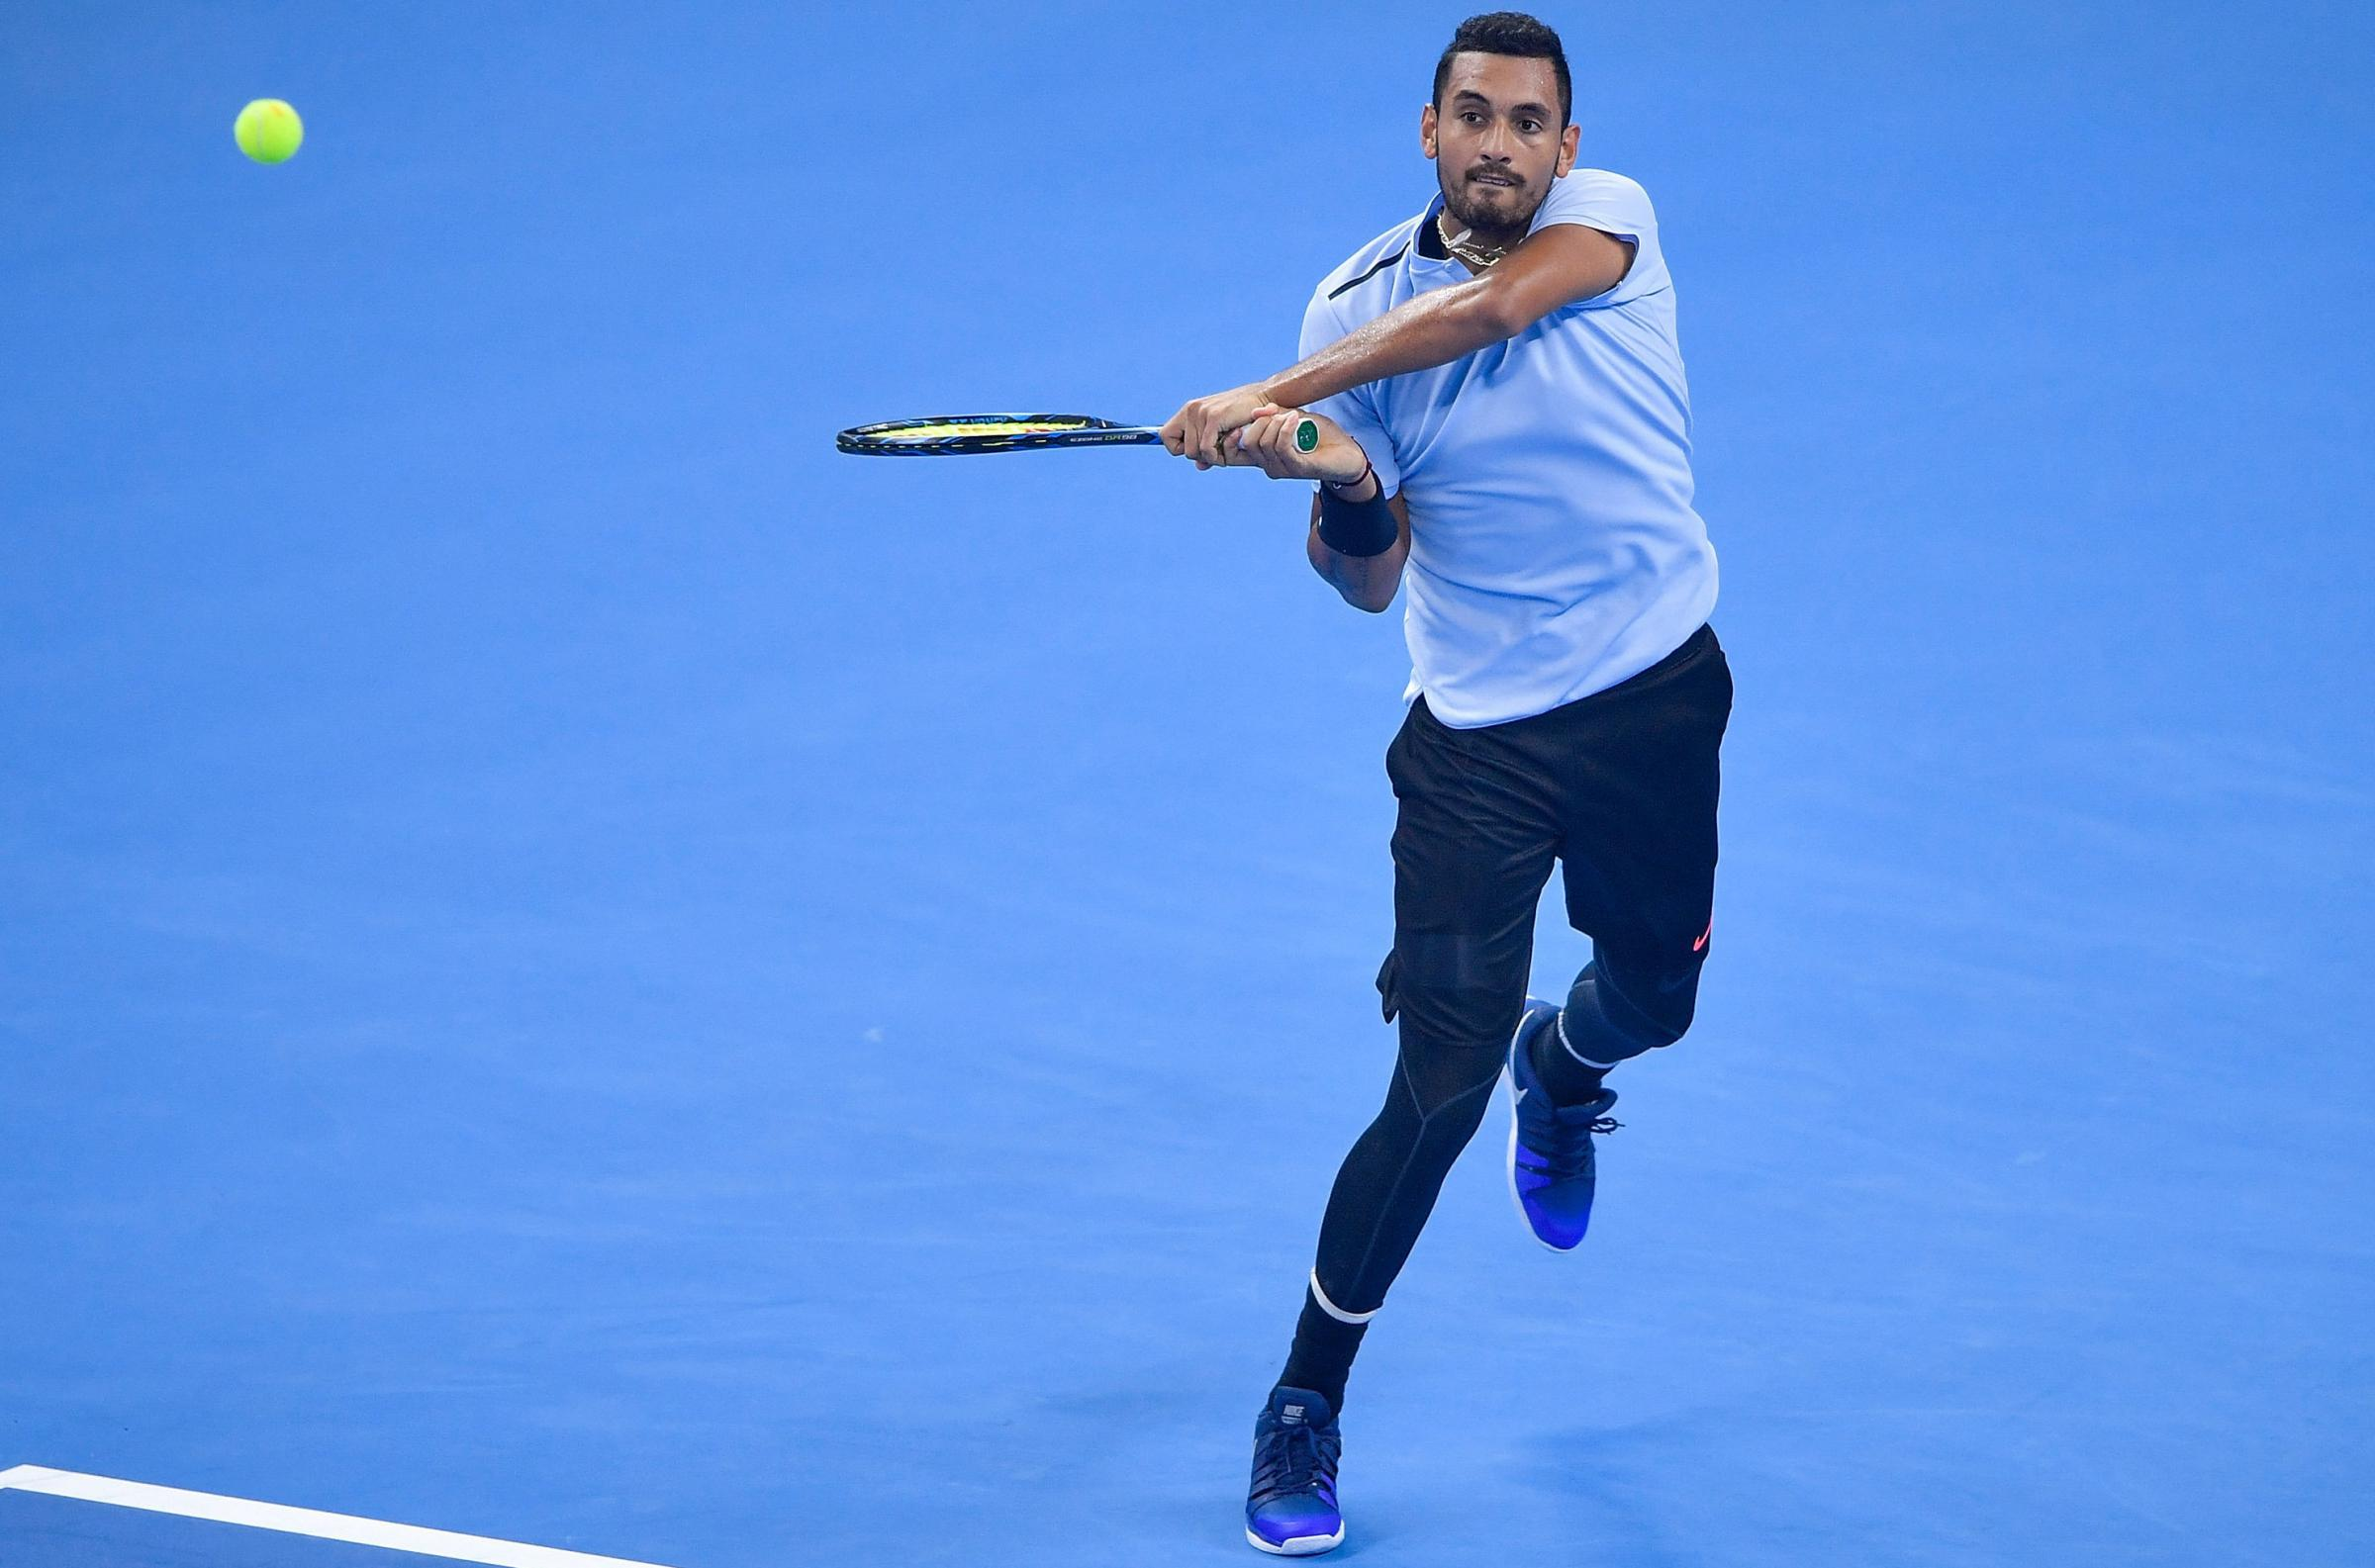 Nick Kyrgios has been fined after he walked off after losing the first set of his match in Shanghai